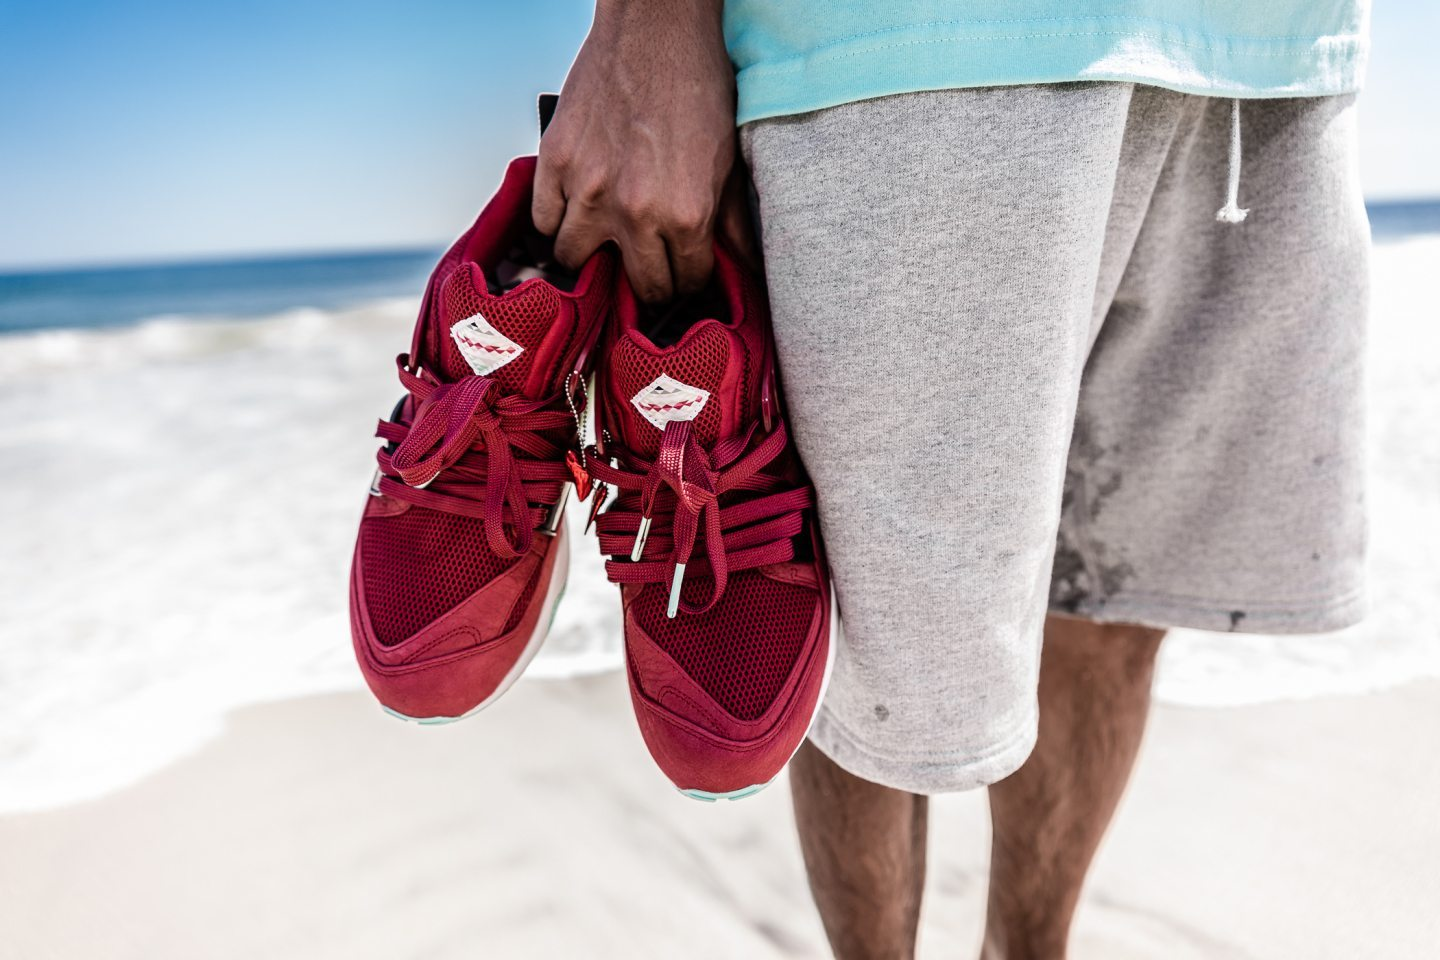 Sneaker Freaker x Packer x Puma Blaze of Glory Bloodbath 13